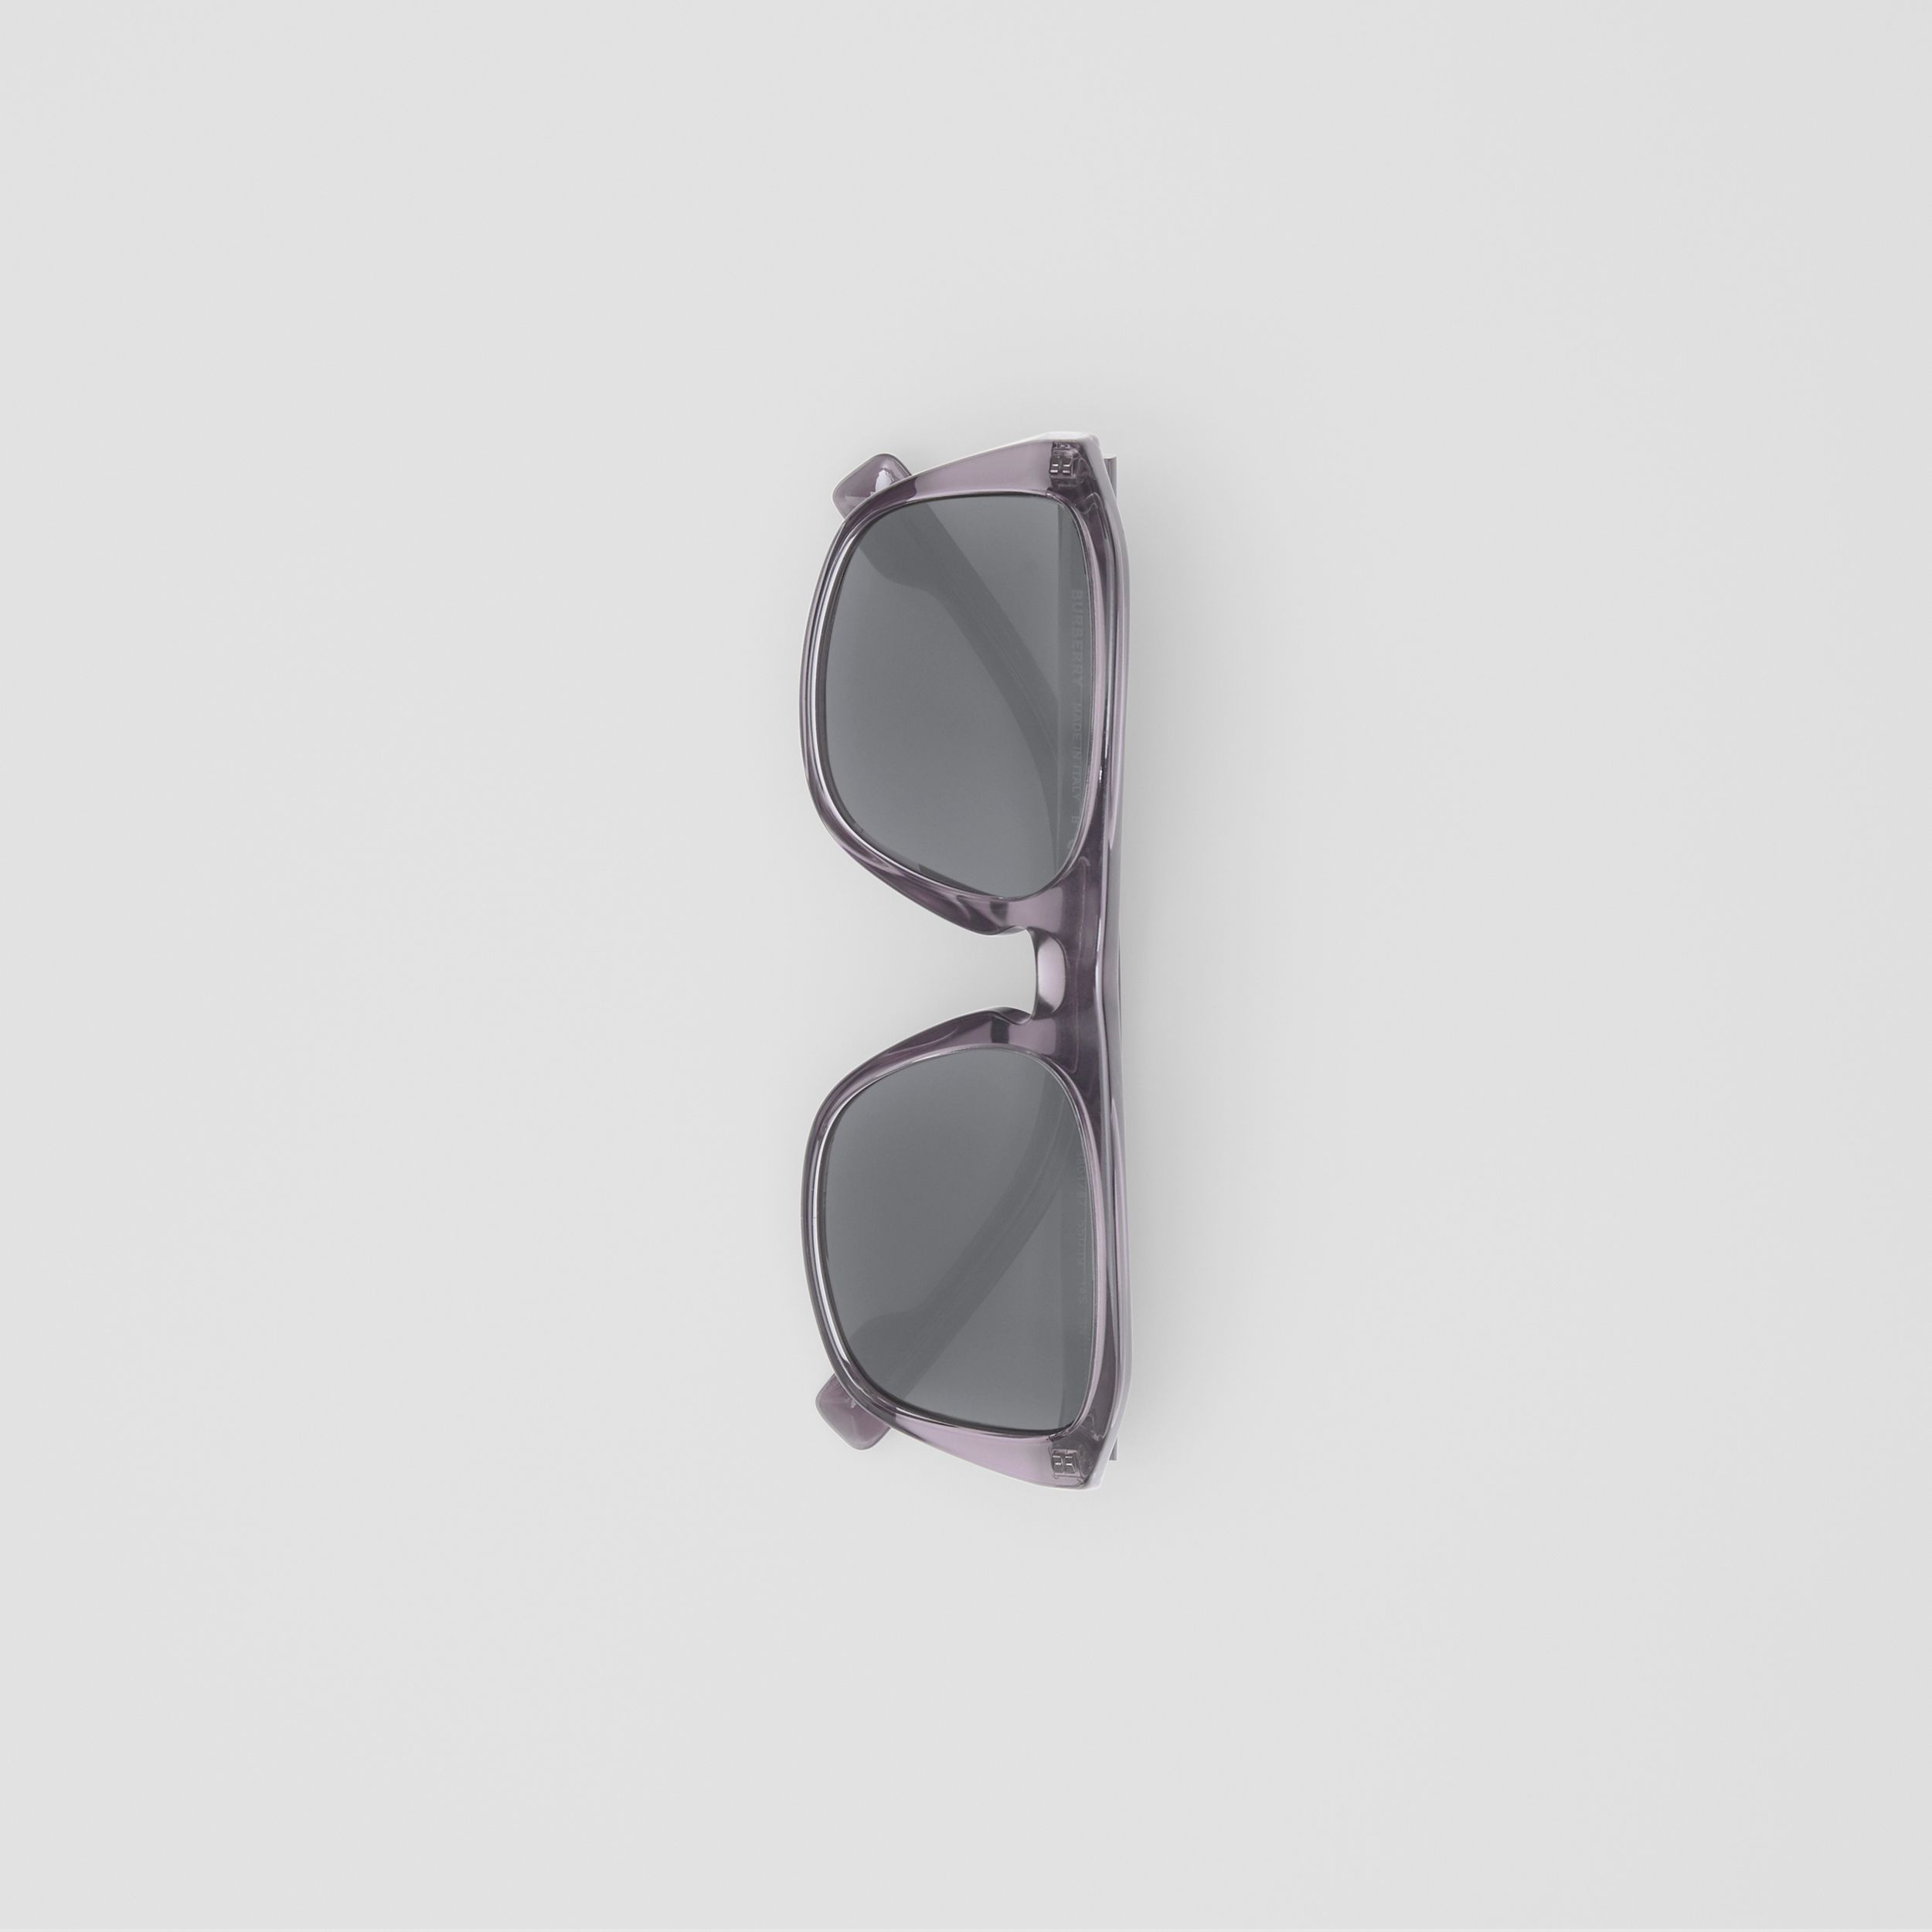 Square Frame Sunglasses in Grey - Men | Burberry - 4